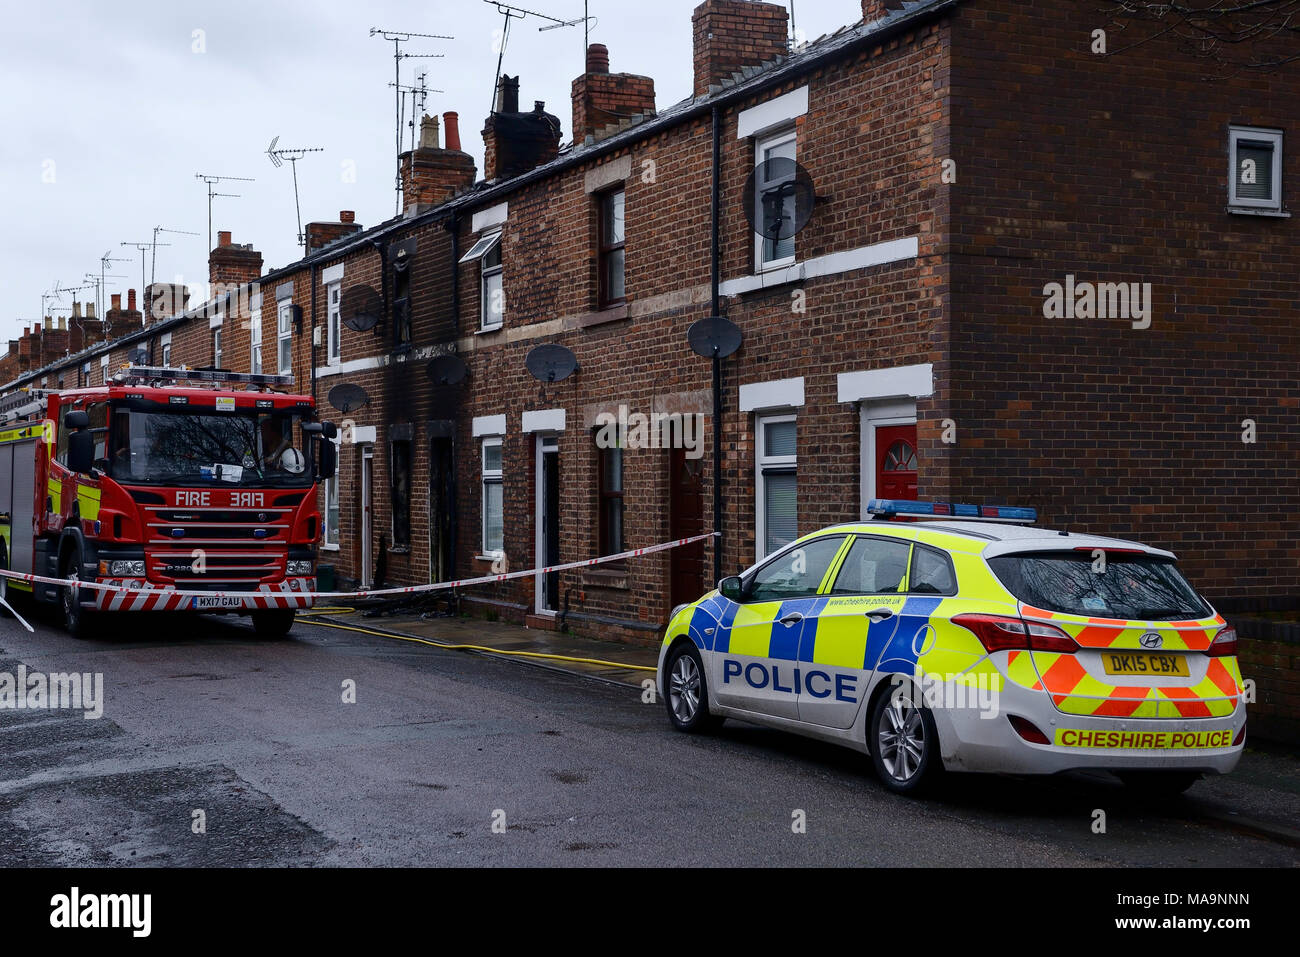 Phillip Street, Hoole, Chester, UK. 31st March 2018. A major house fire broke out at a terraced property last night with fire and police still in attendance this morning. Credit: Andrew Paterson/Alamy Live News - Stock Image